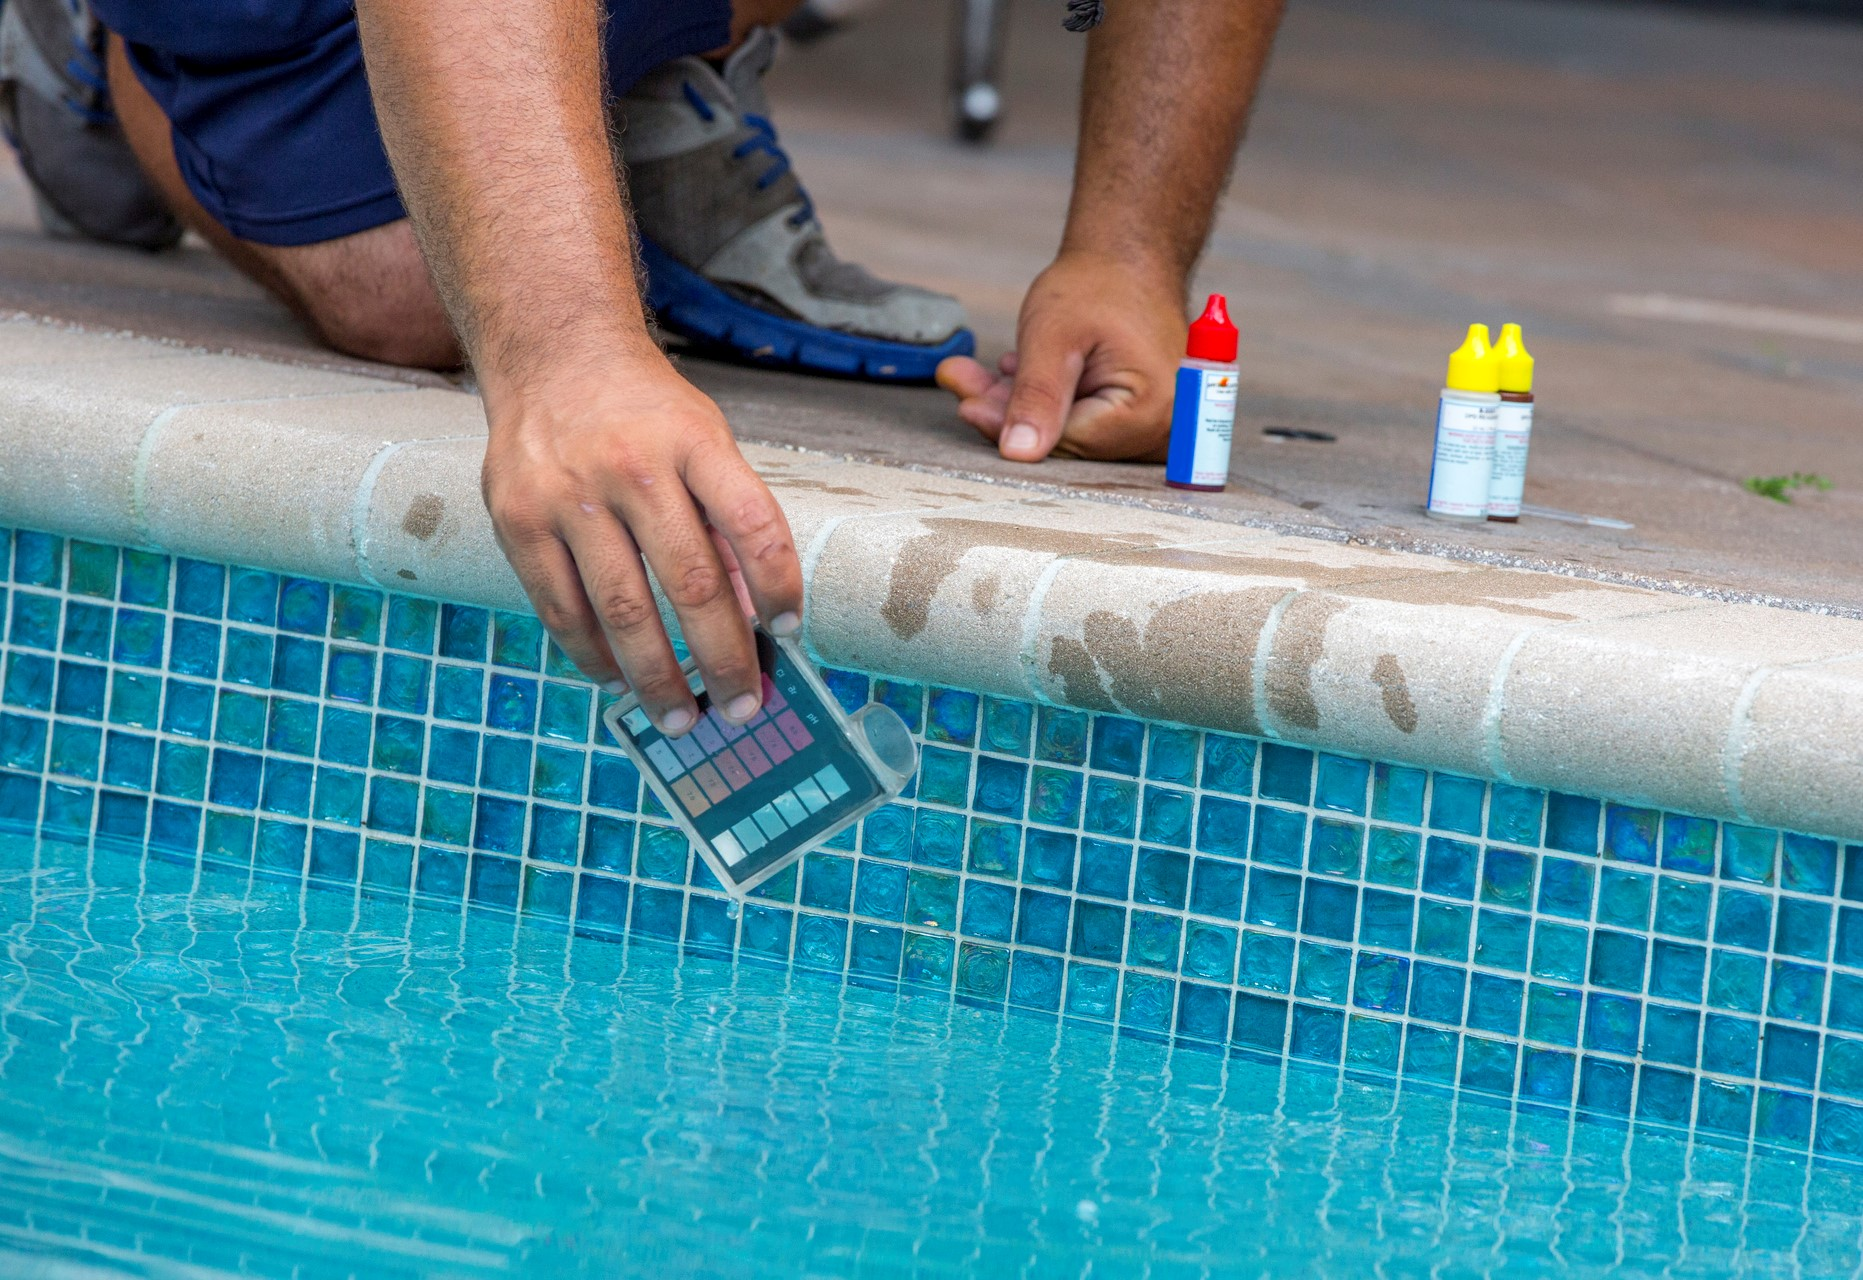 Photo of a technician taking water samples from a swimming pool to ensure public safety.